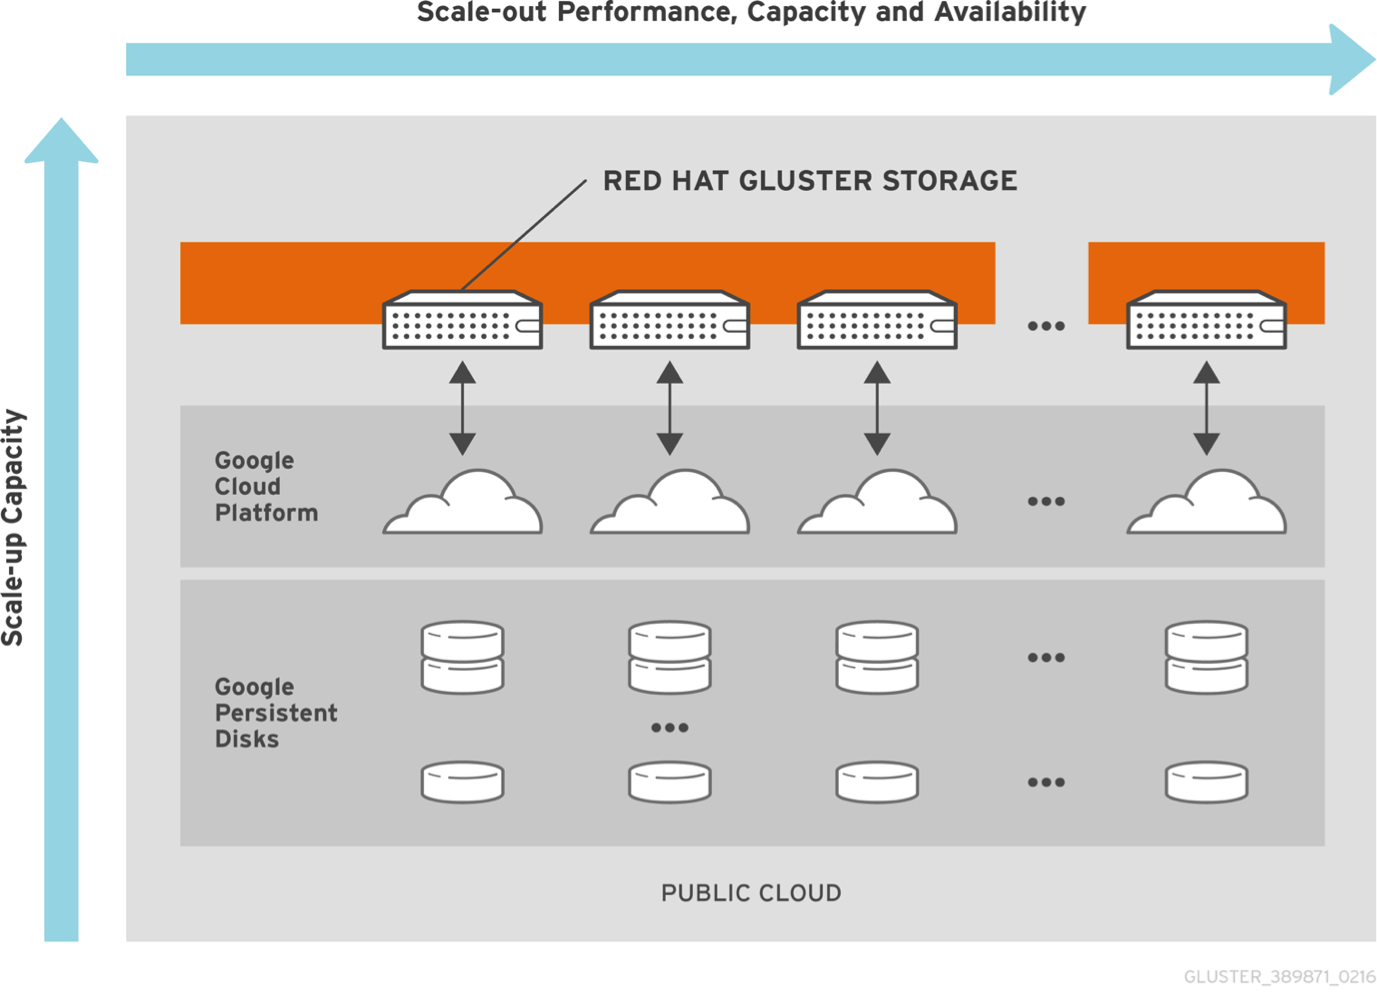 Red Hat Gluster Storage now available in Google Cloud Platform